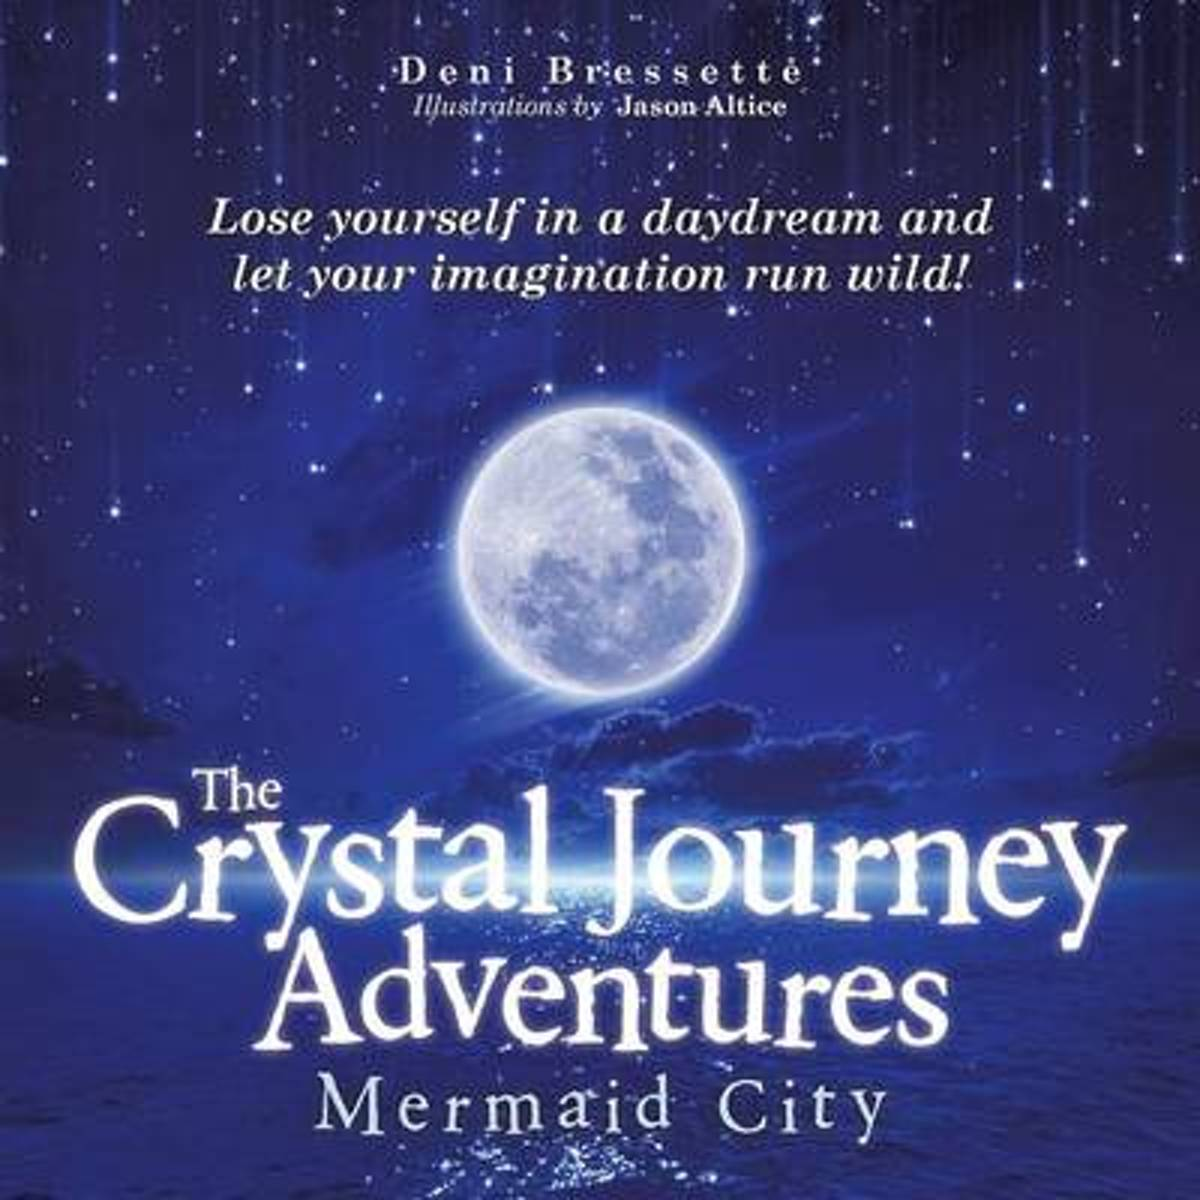 The Crystal Journey Adventures